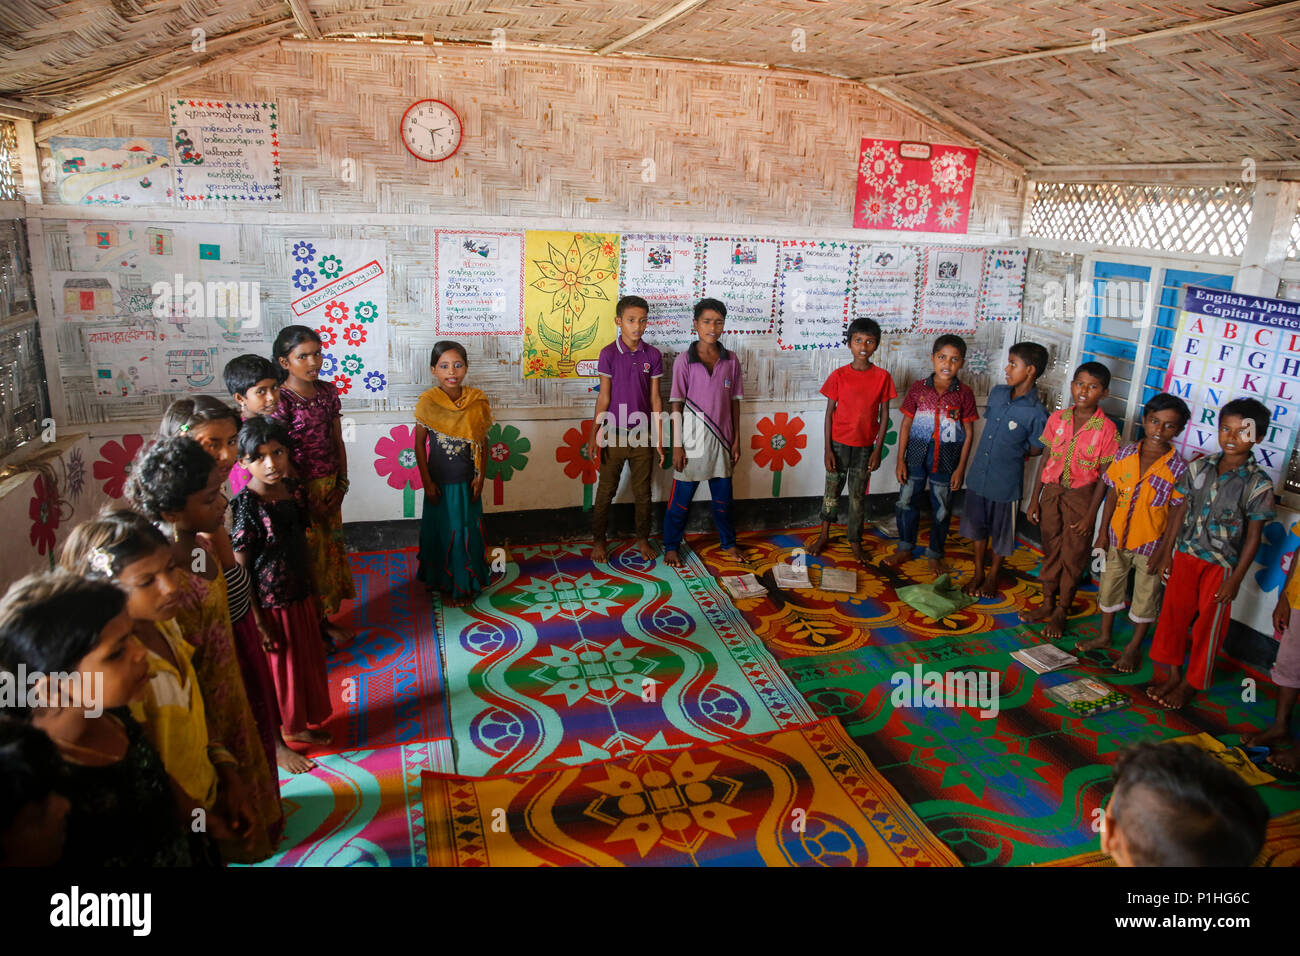 Rohingya refugee children attend class at a temporary school in Kutupalong refugee camp at Ukhiya in Cox's Bazar, Bangladesh - Stock Image